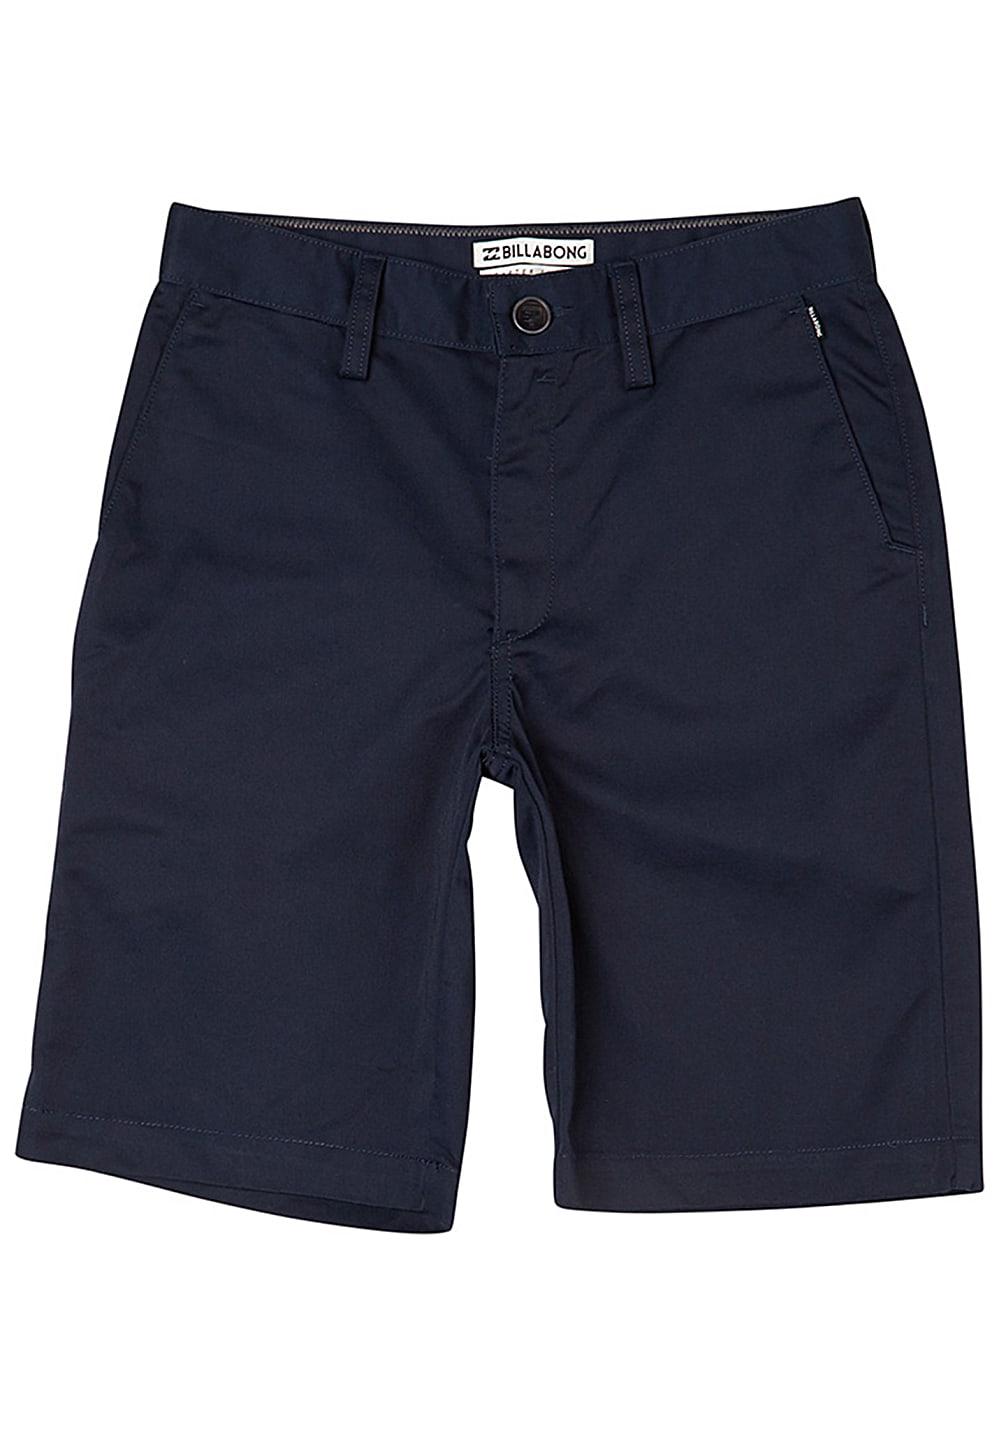 Boyshosen - BILLABONG Carter Shorts für Jungs Blau - Onlineshop Planet Sports